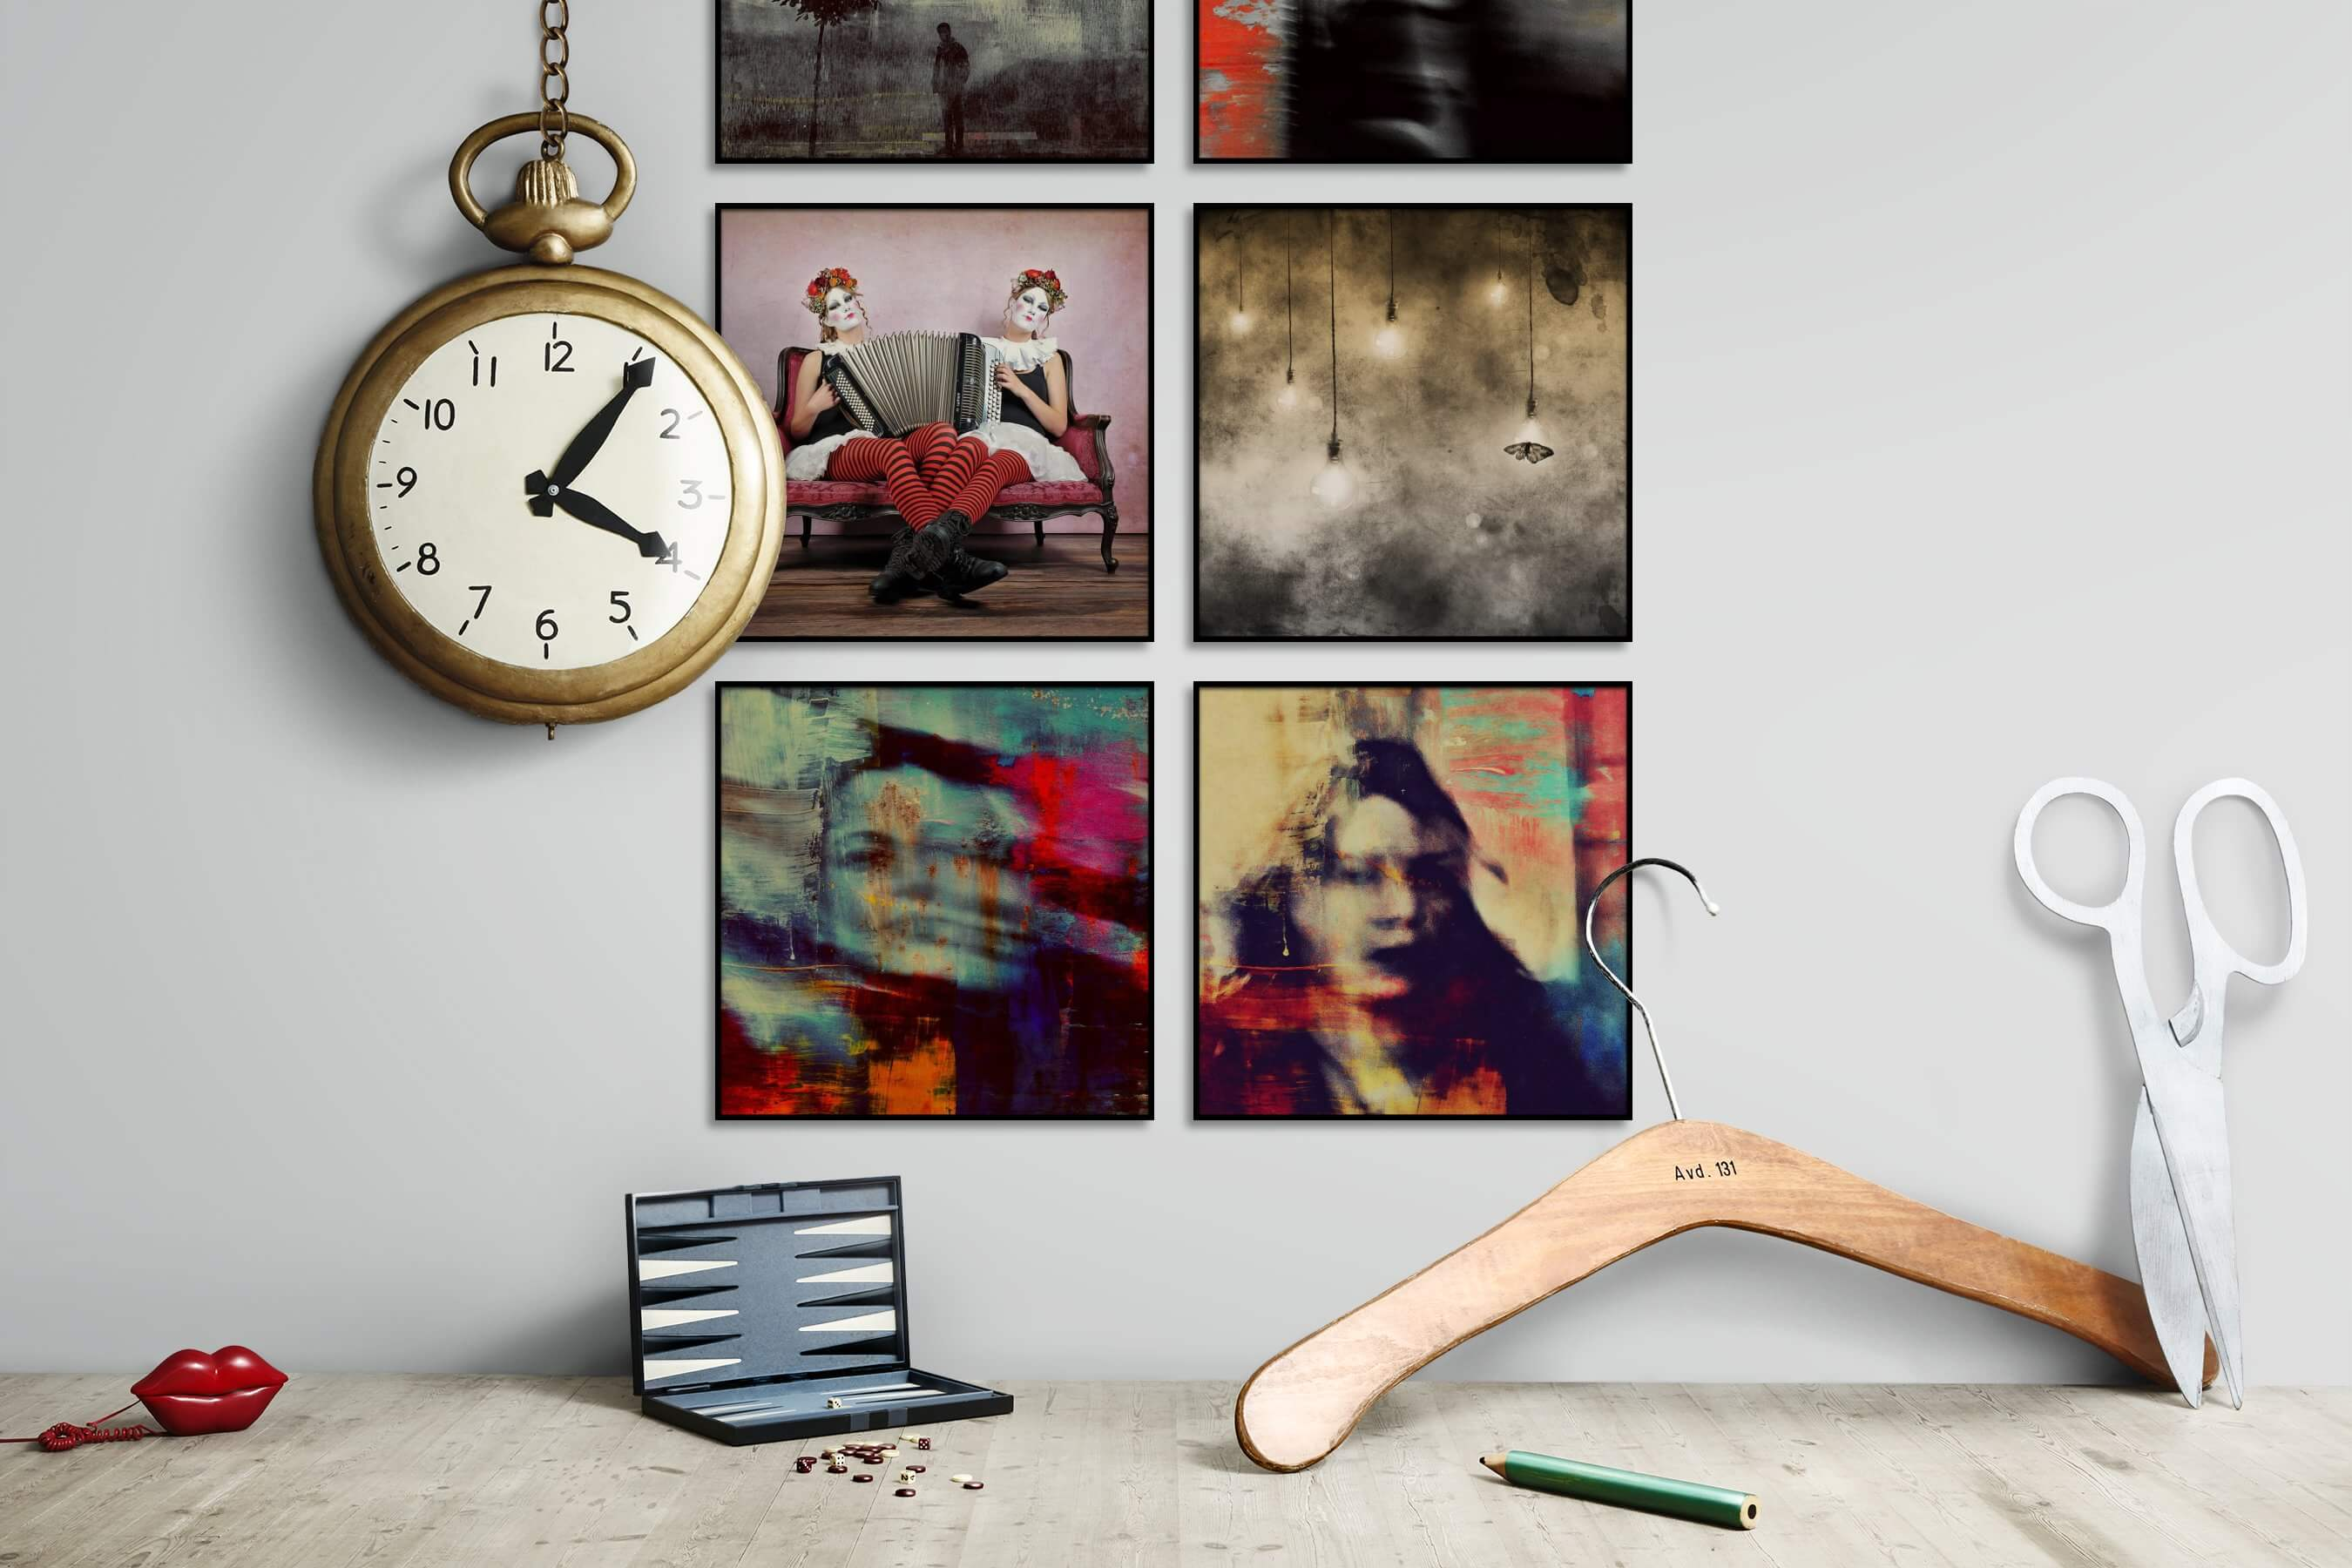 Gallery wall idea with six framed pictures arranged on a wall depicting Artsy